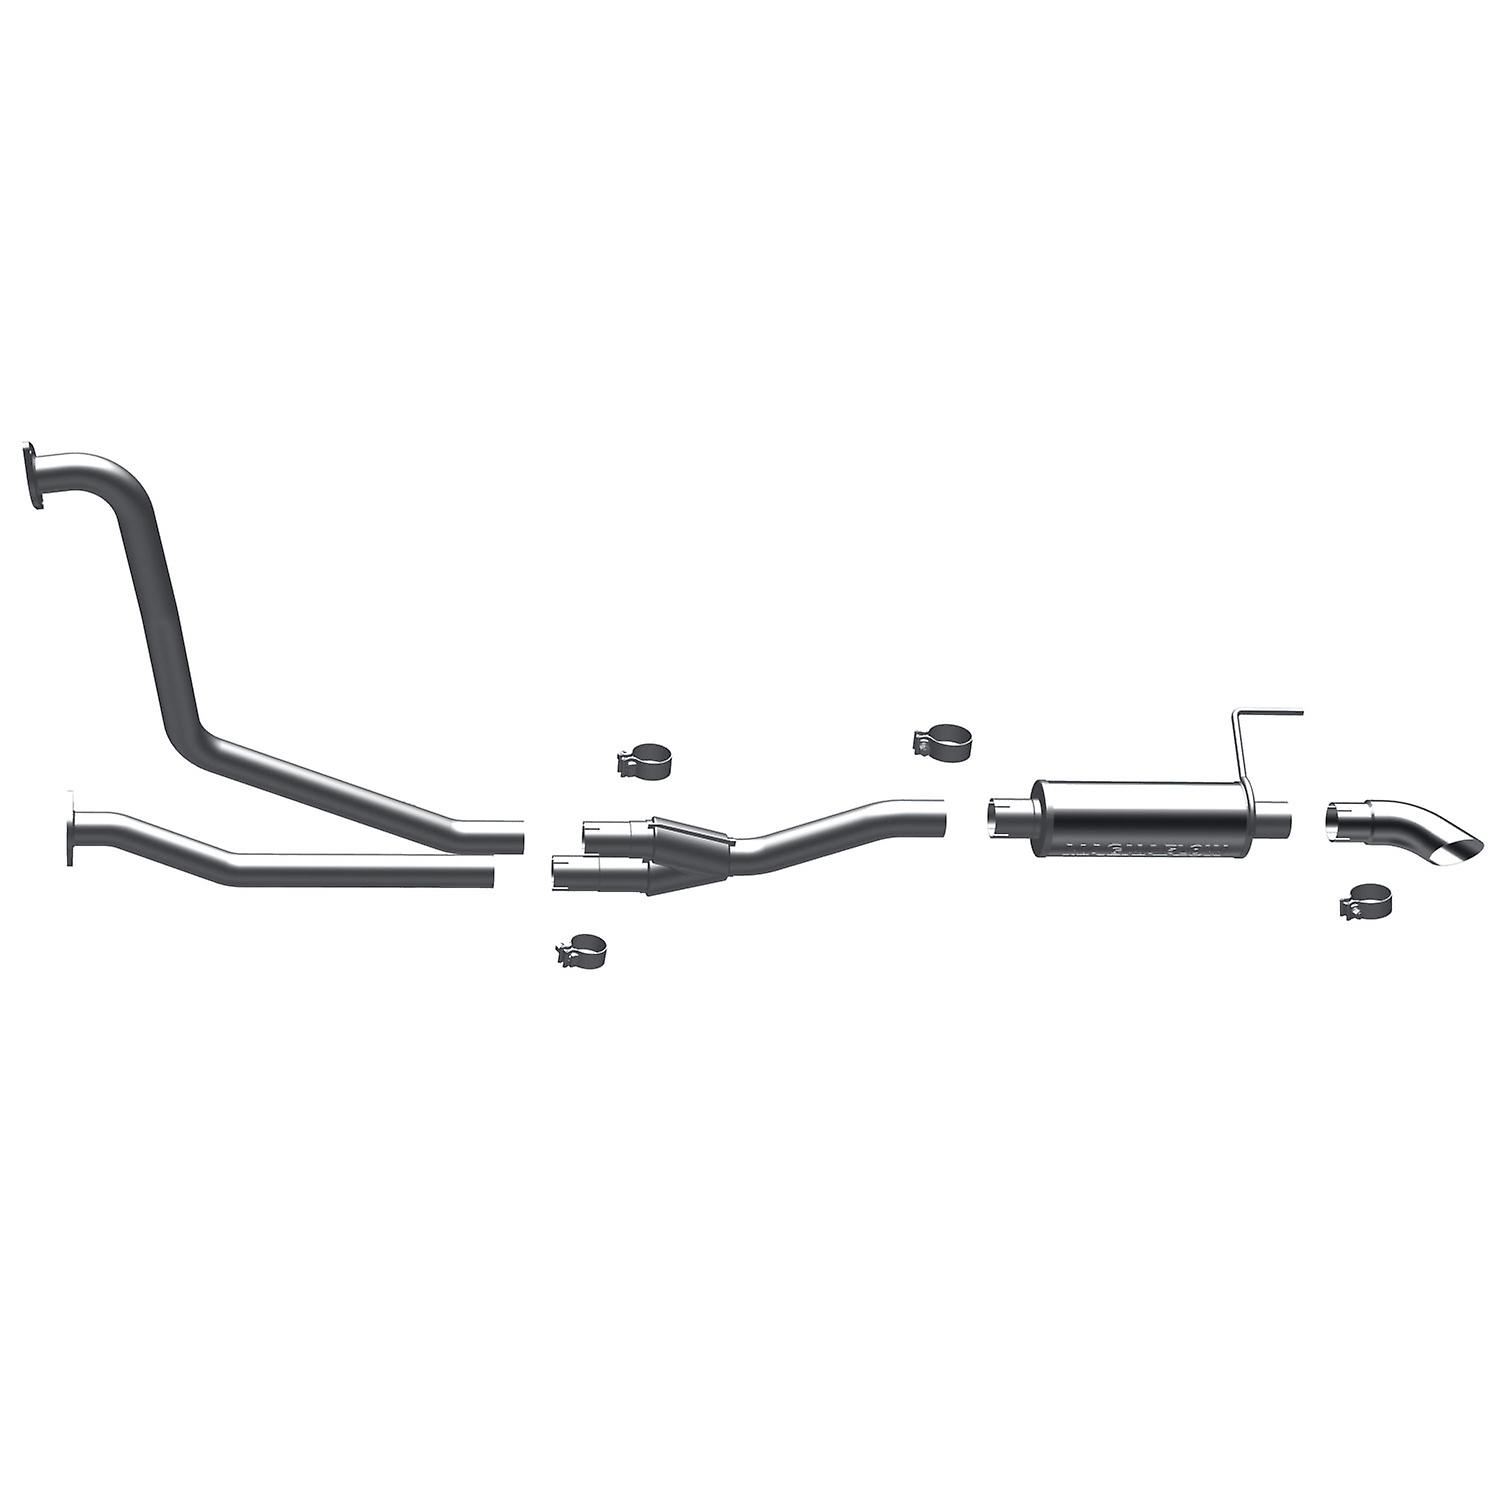 MagnaFlow Exhaust Products 17109 Cat-Back